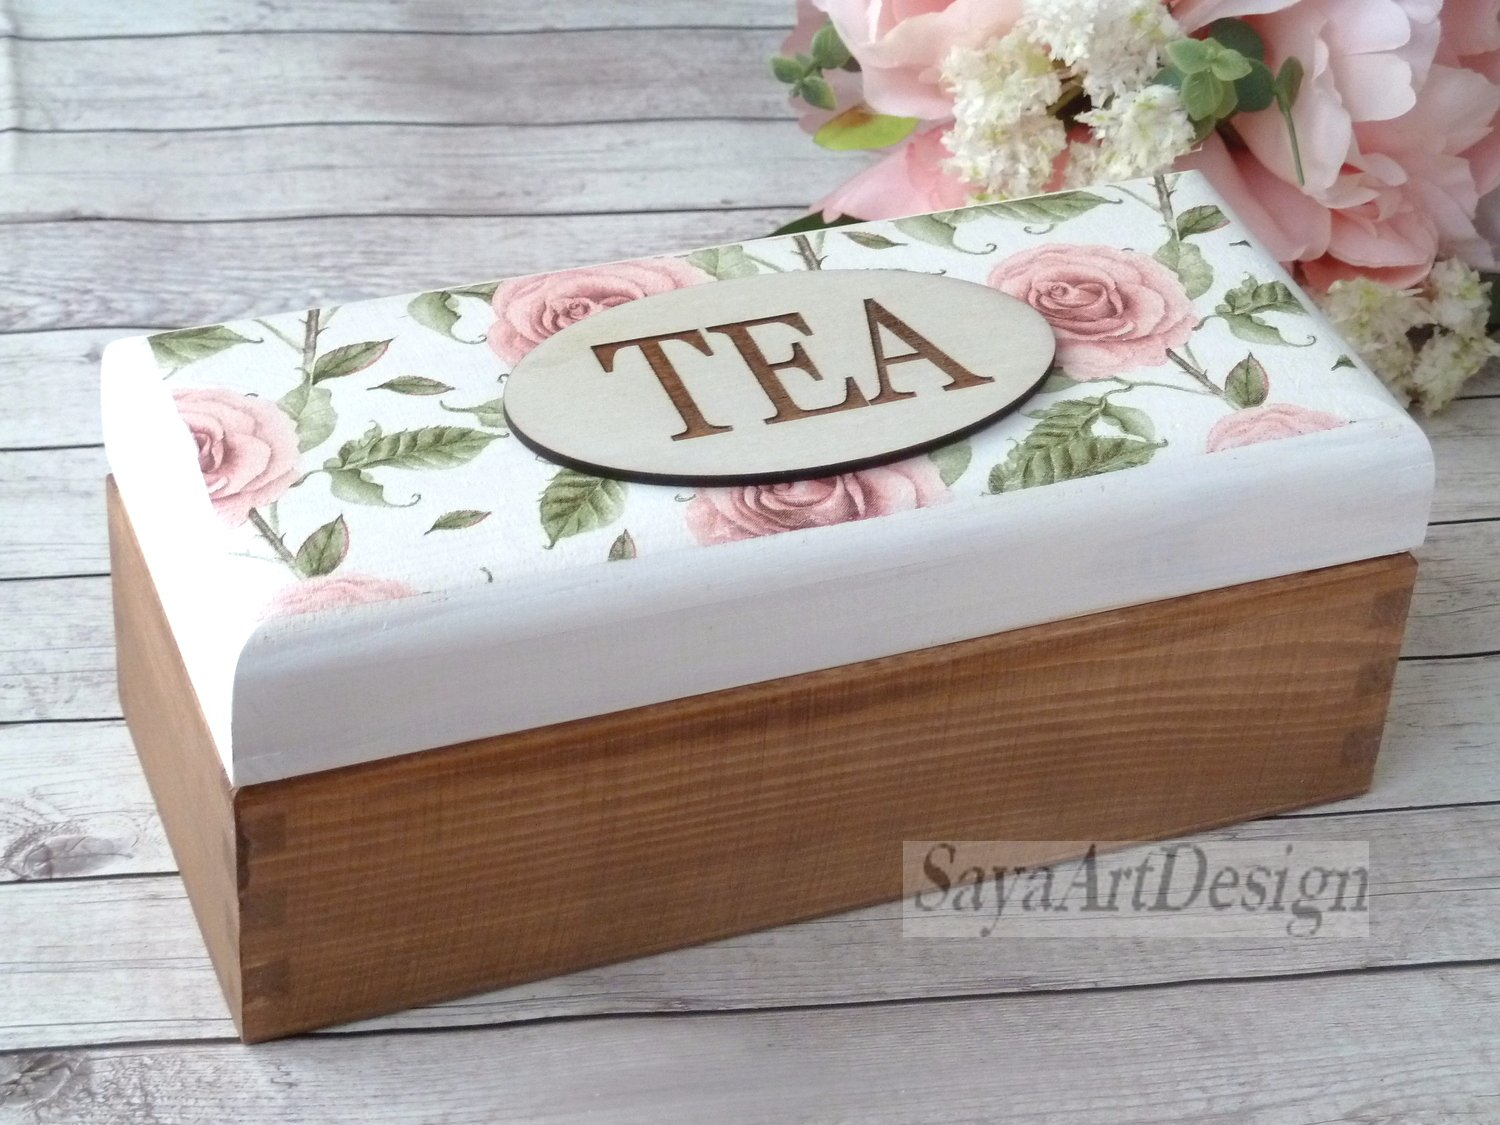 Wooden Tea Box with Pink Roses. Shabby chic Tea Bags Box. Bohemian Rustic Box. Gift Ideas